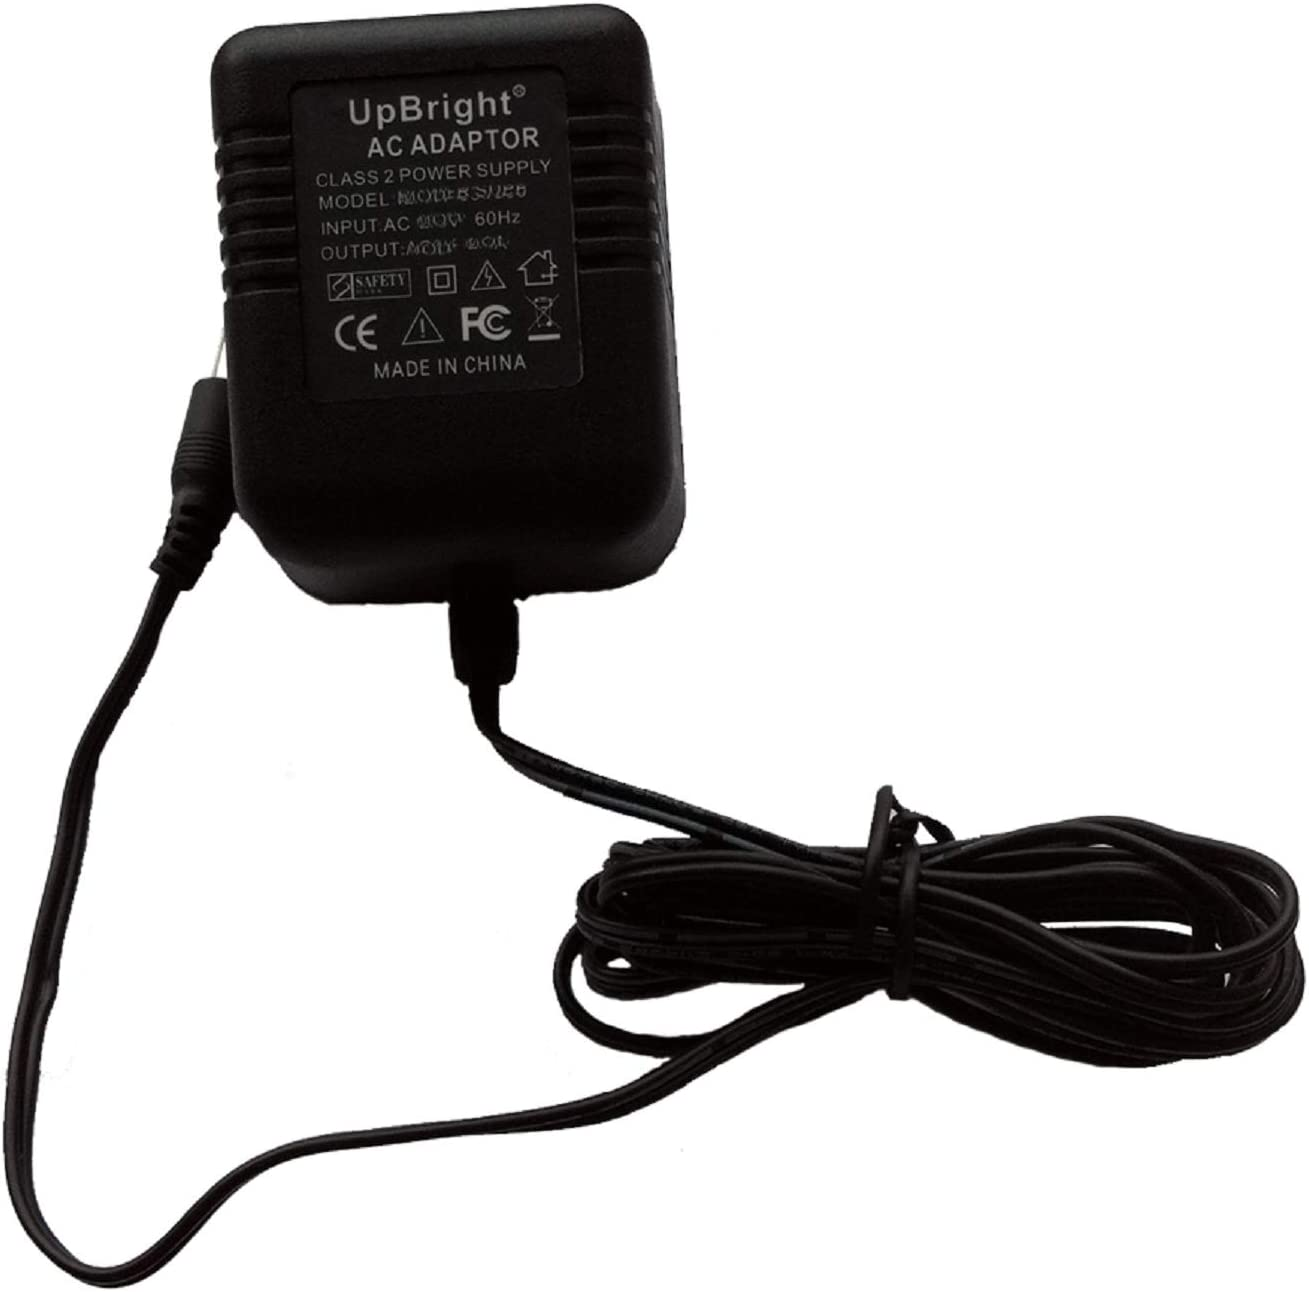 7.5V AC-AC Adapter For Logic Controls A12-1A-04 Power Supply Cord Cable Charger